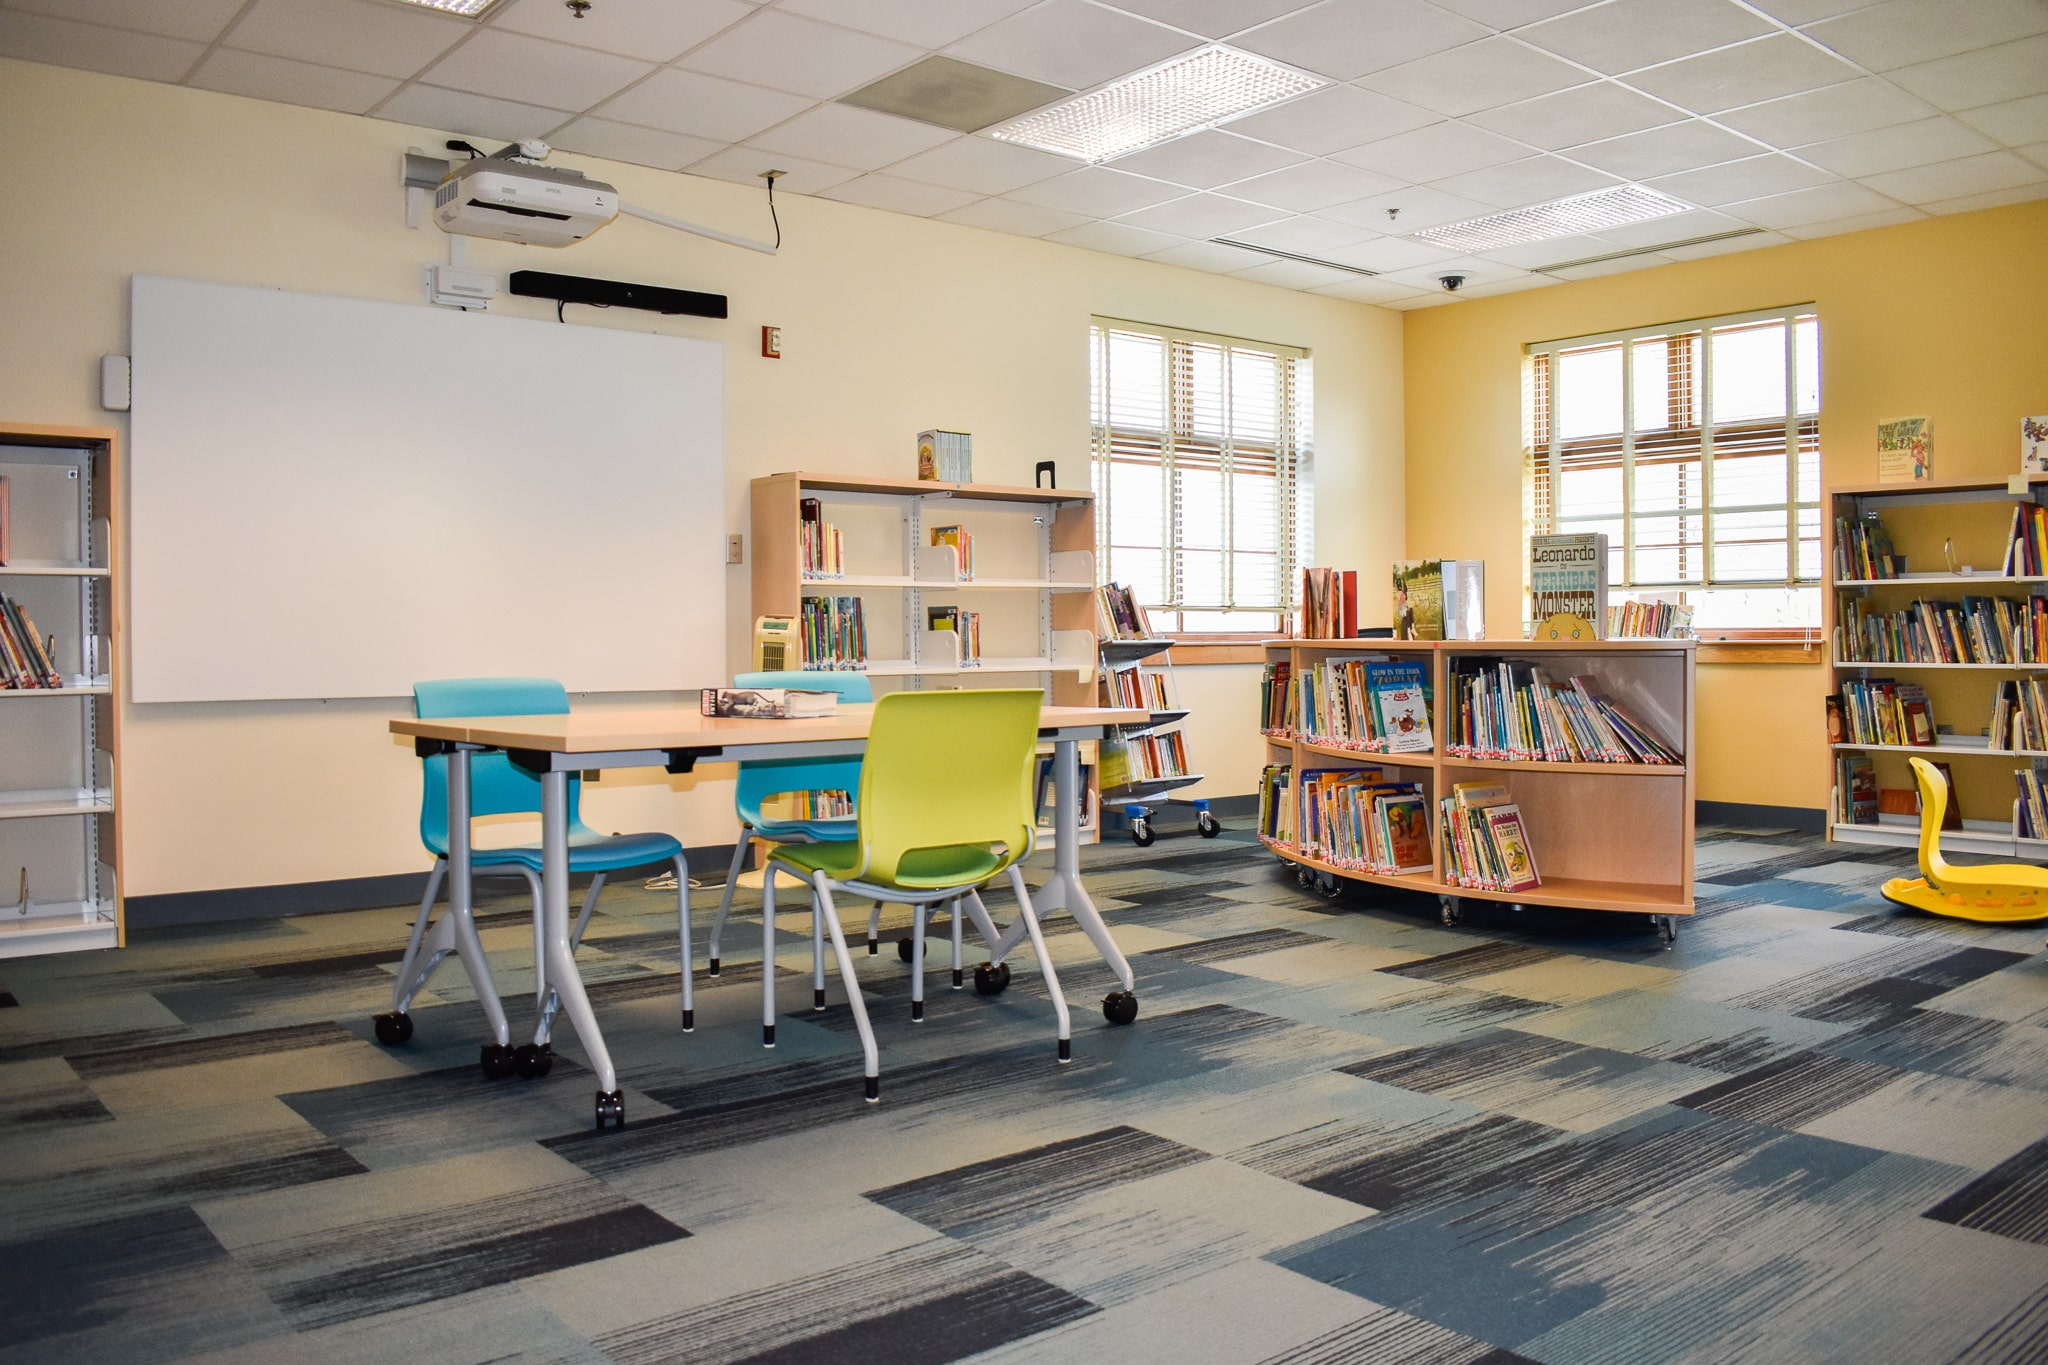 Brand new media center with brightly colored walls, rug, chairs, and bookshelves